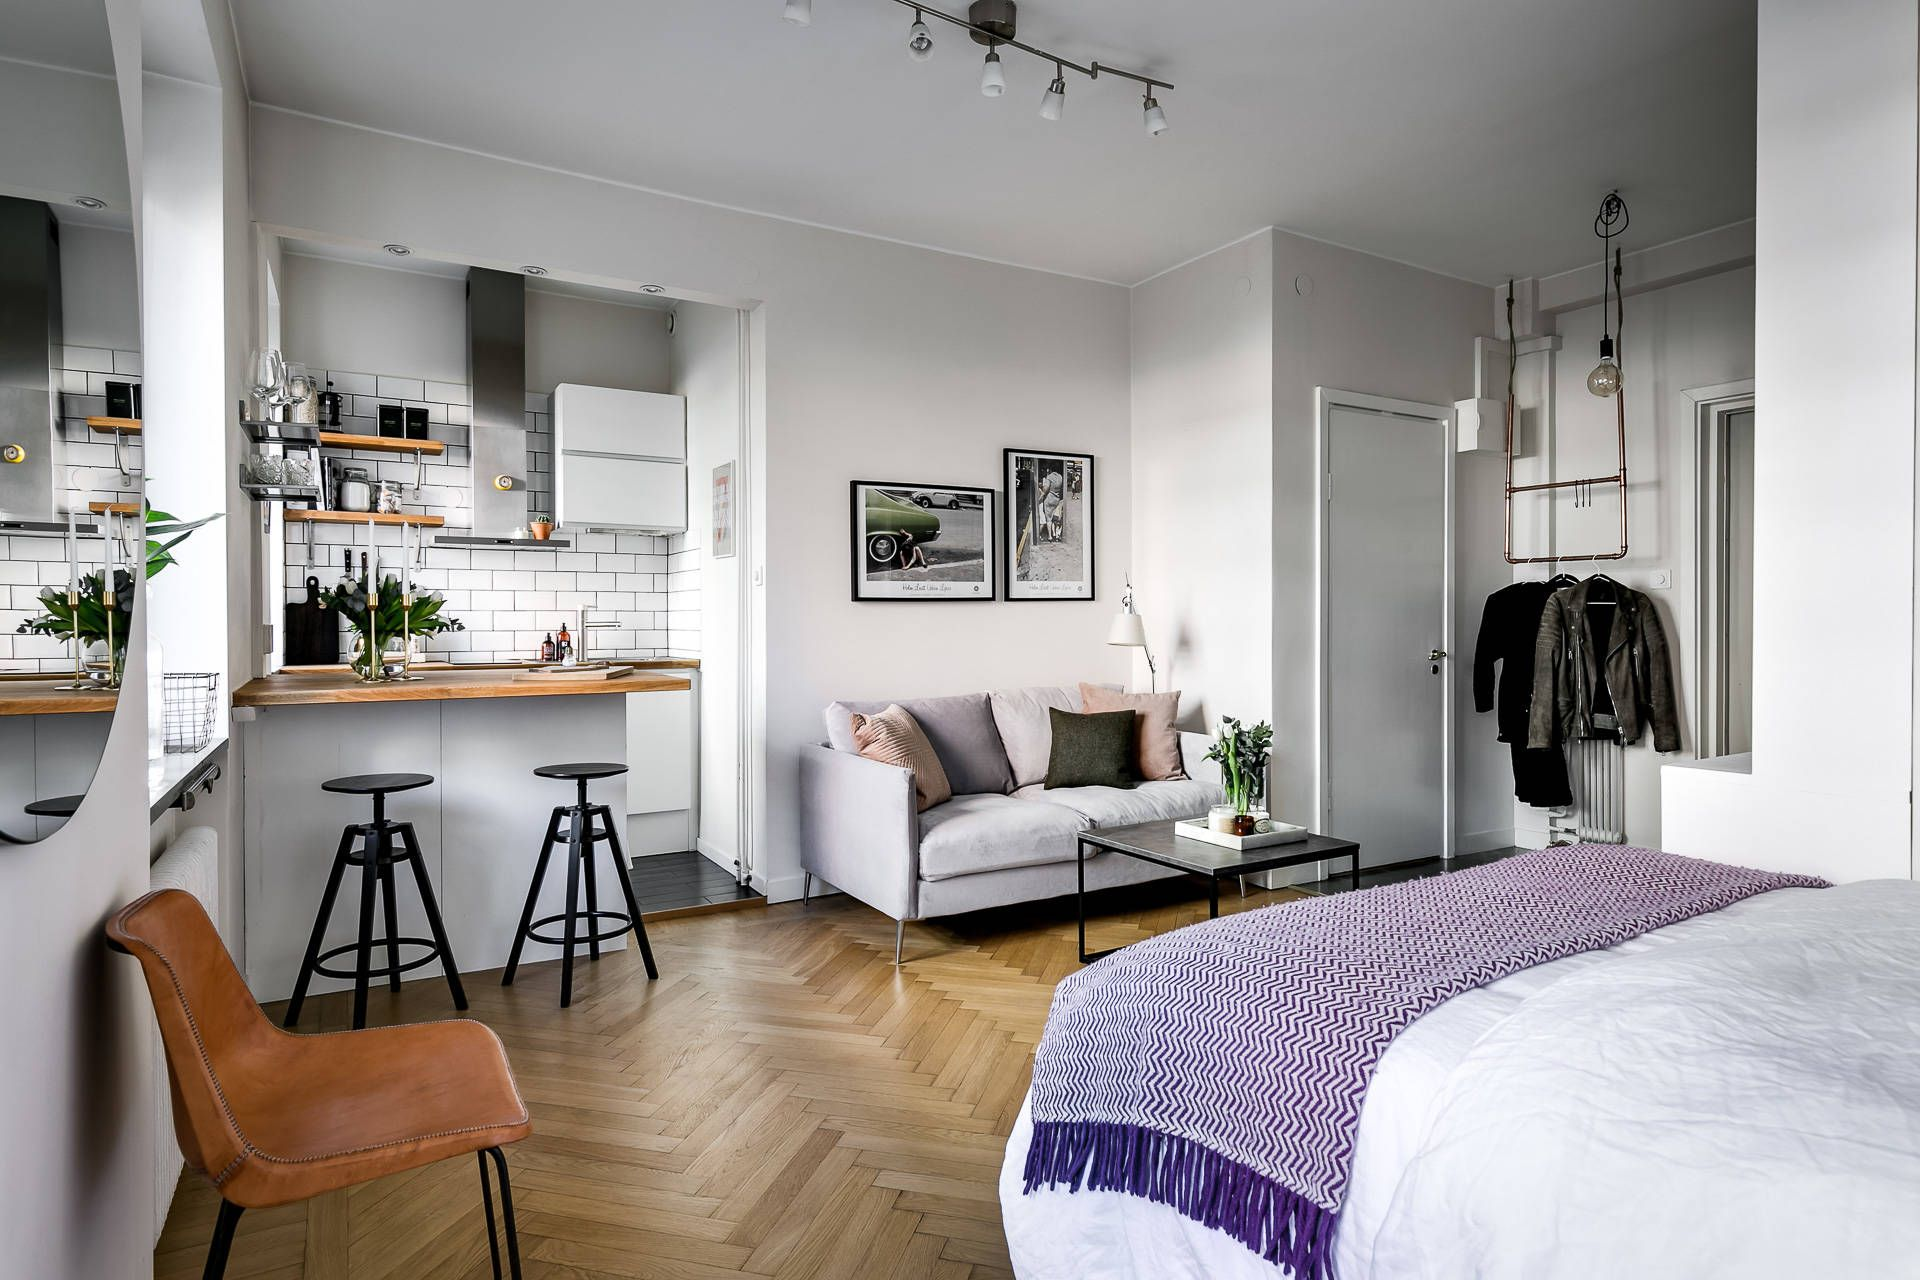 Cozy One Room Apartment In Perfect Style Apartment Bedroom Decor Apartment Interior Apartment Room